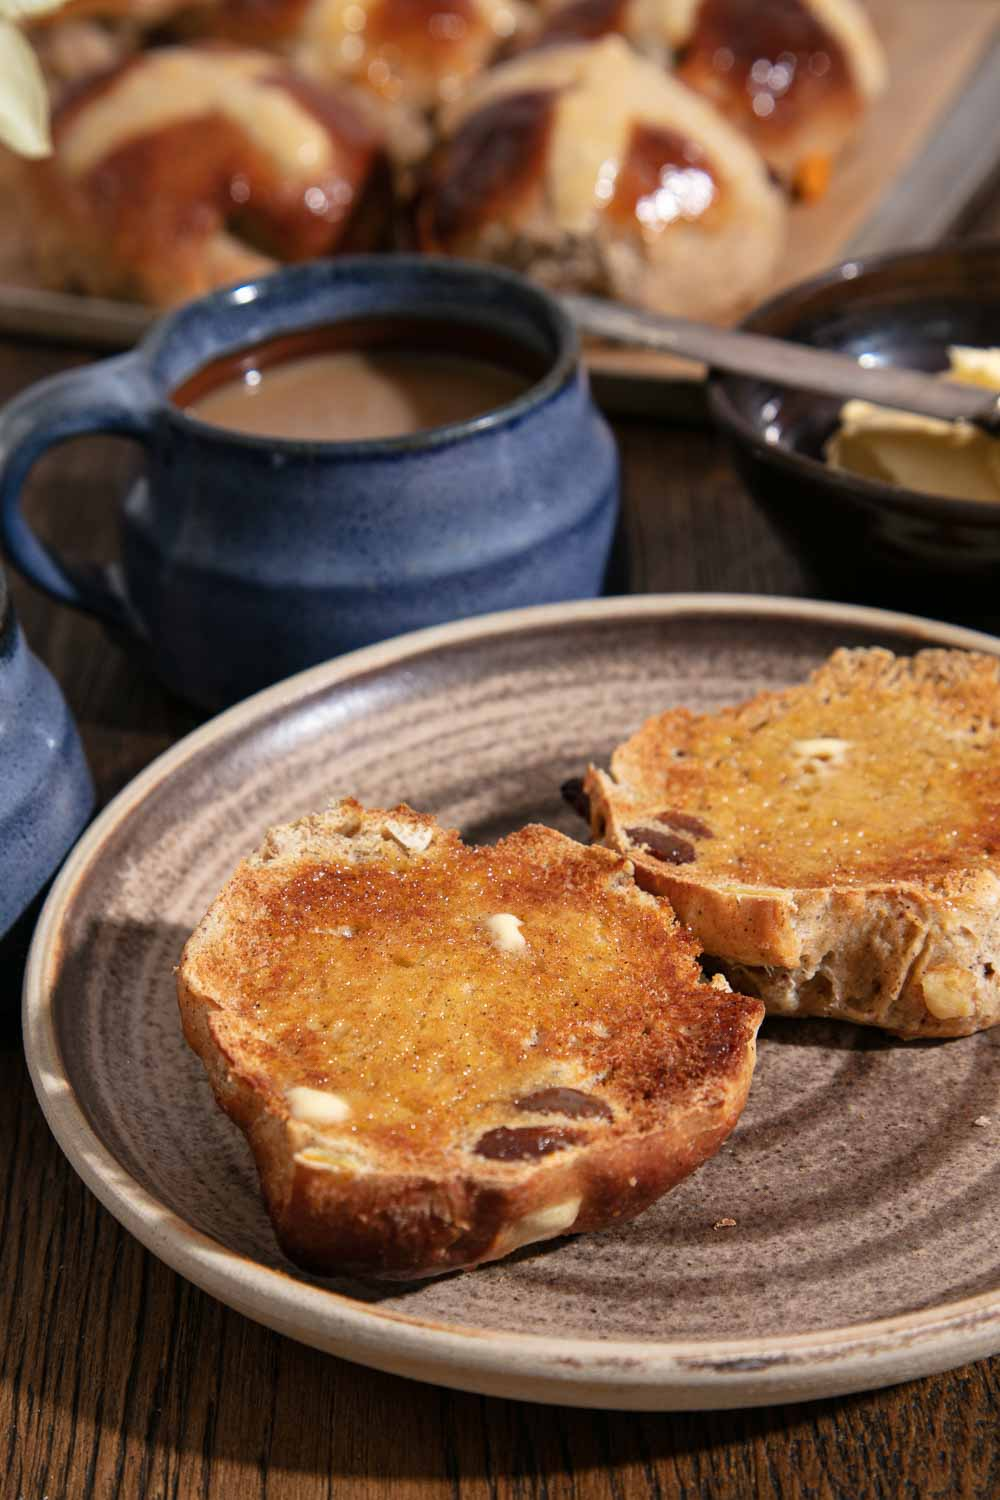 Toasted vegan hot cross bun spread with butter. Served with a cup of tea.